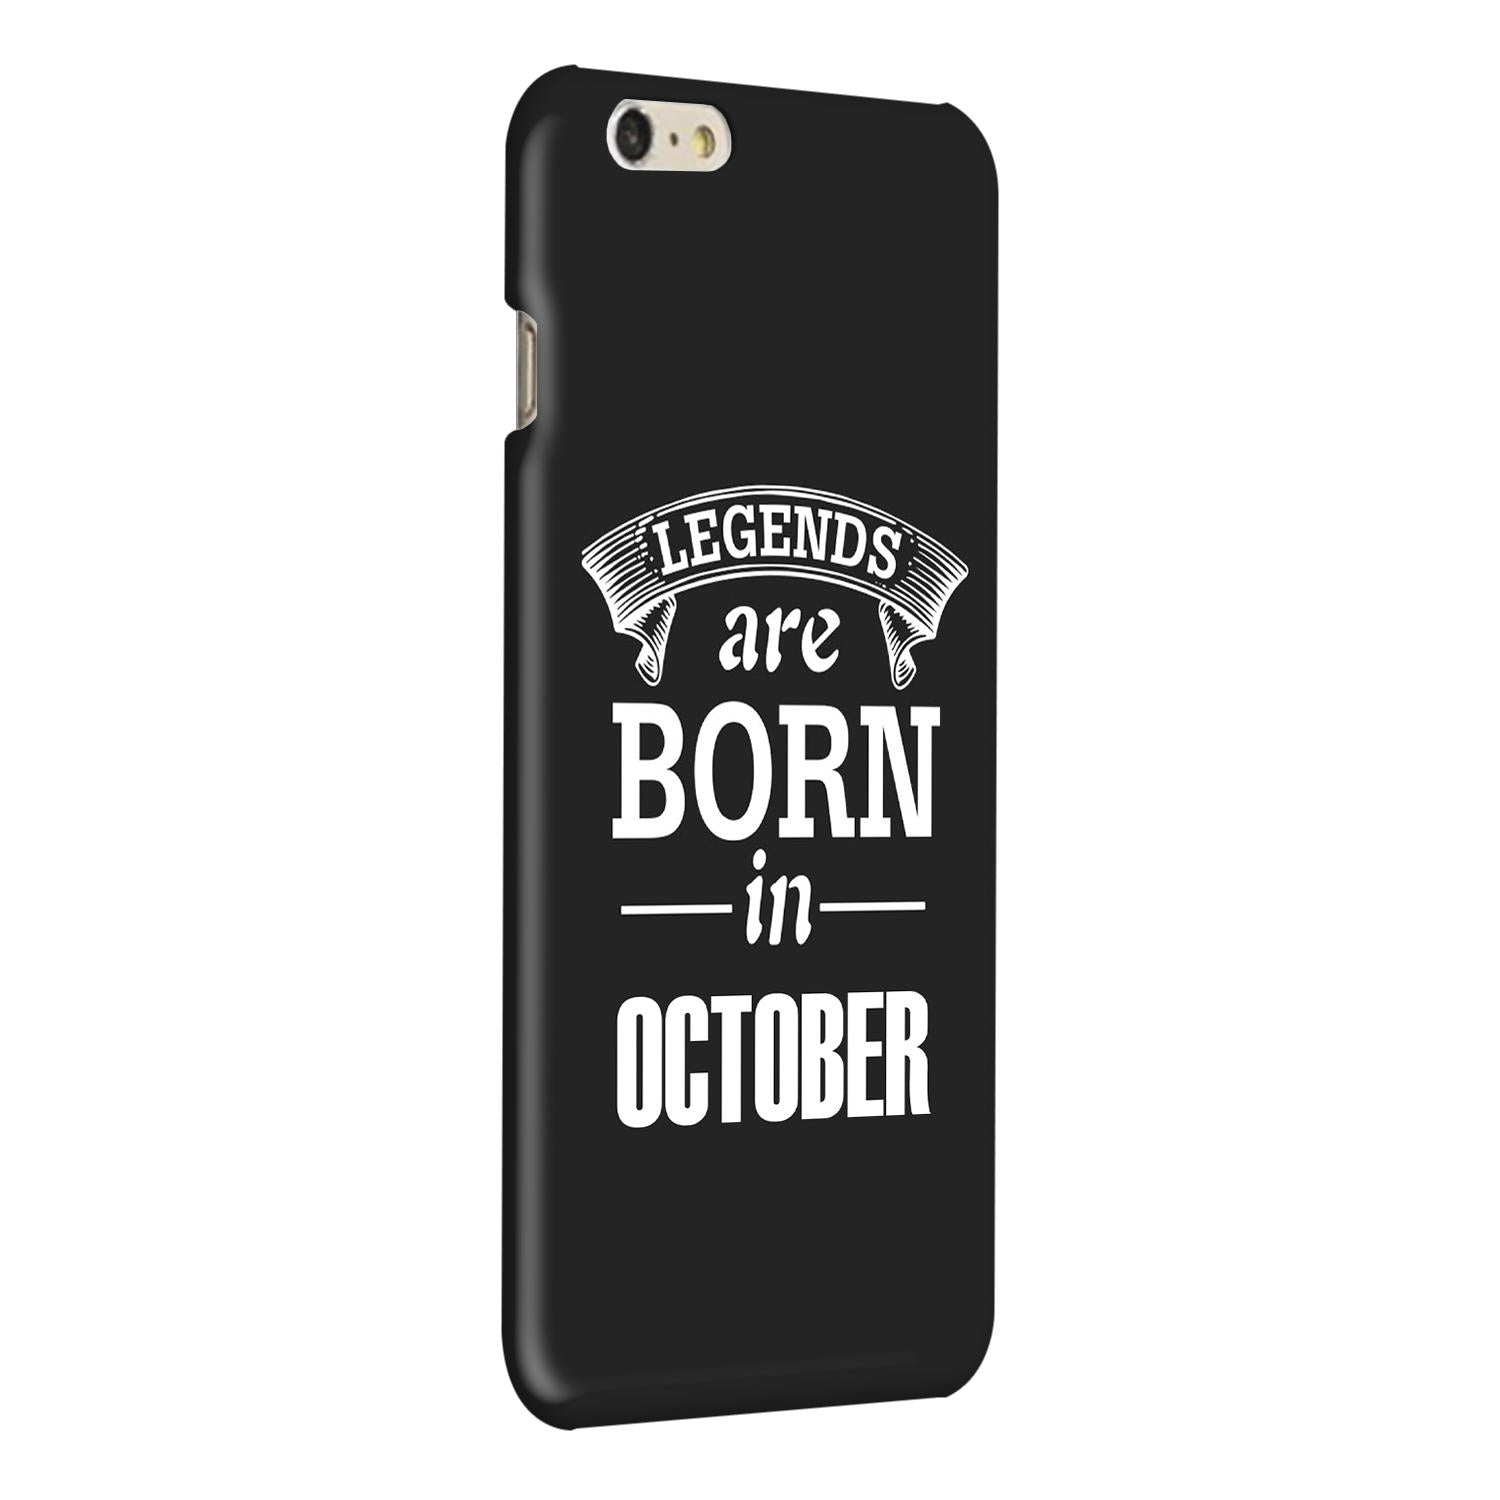 Legends October iPhone 6 Plus Mobile Cover Case - MADANYU